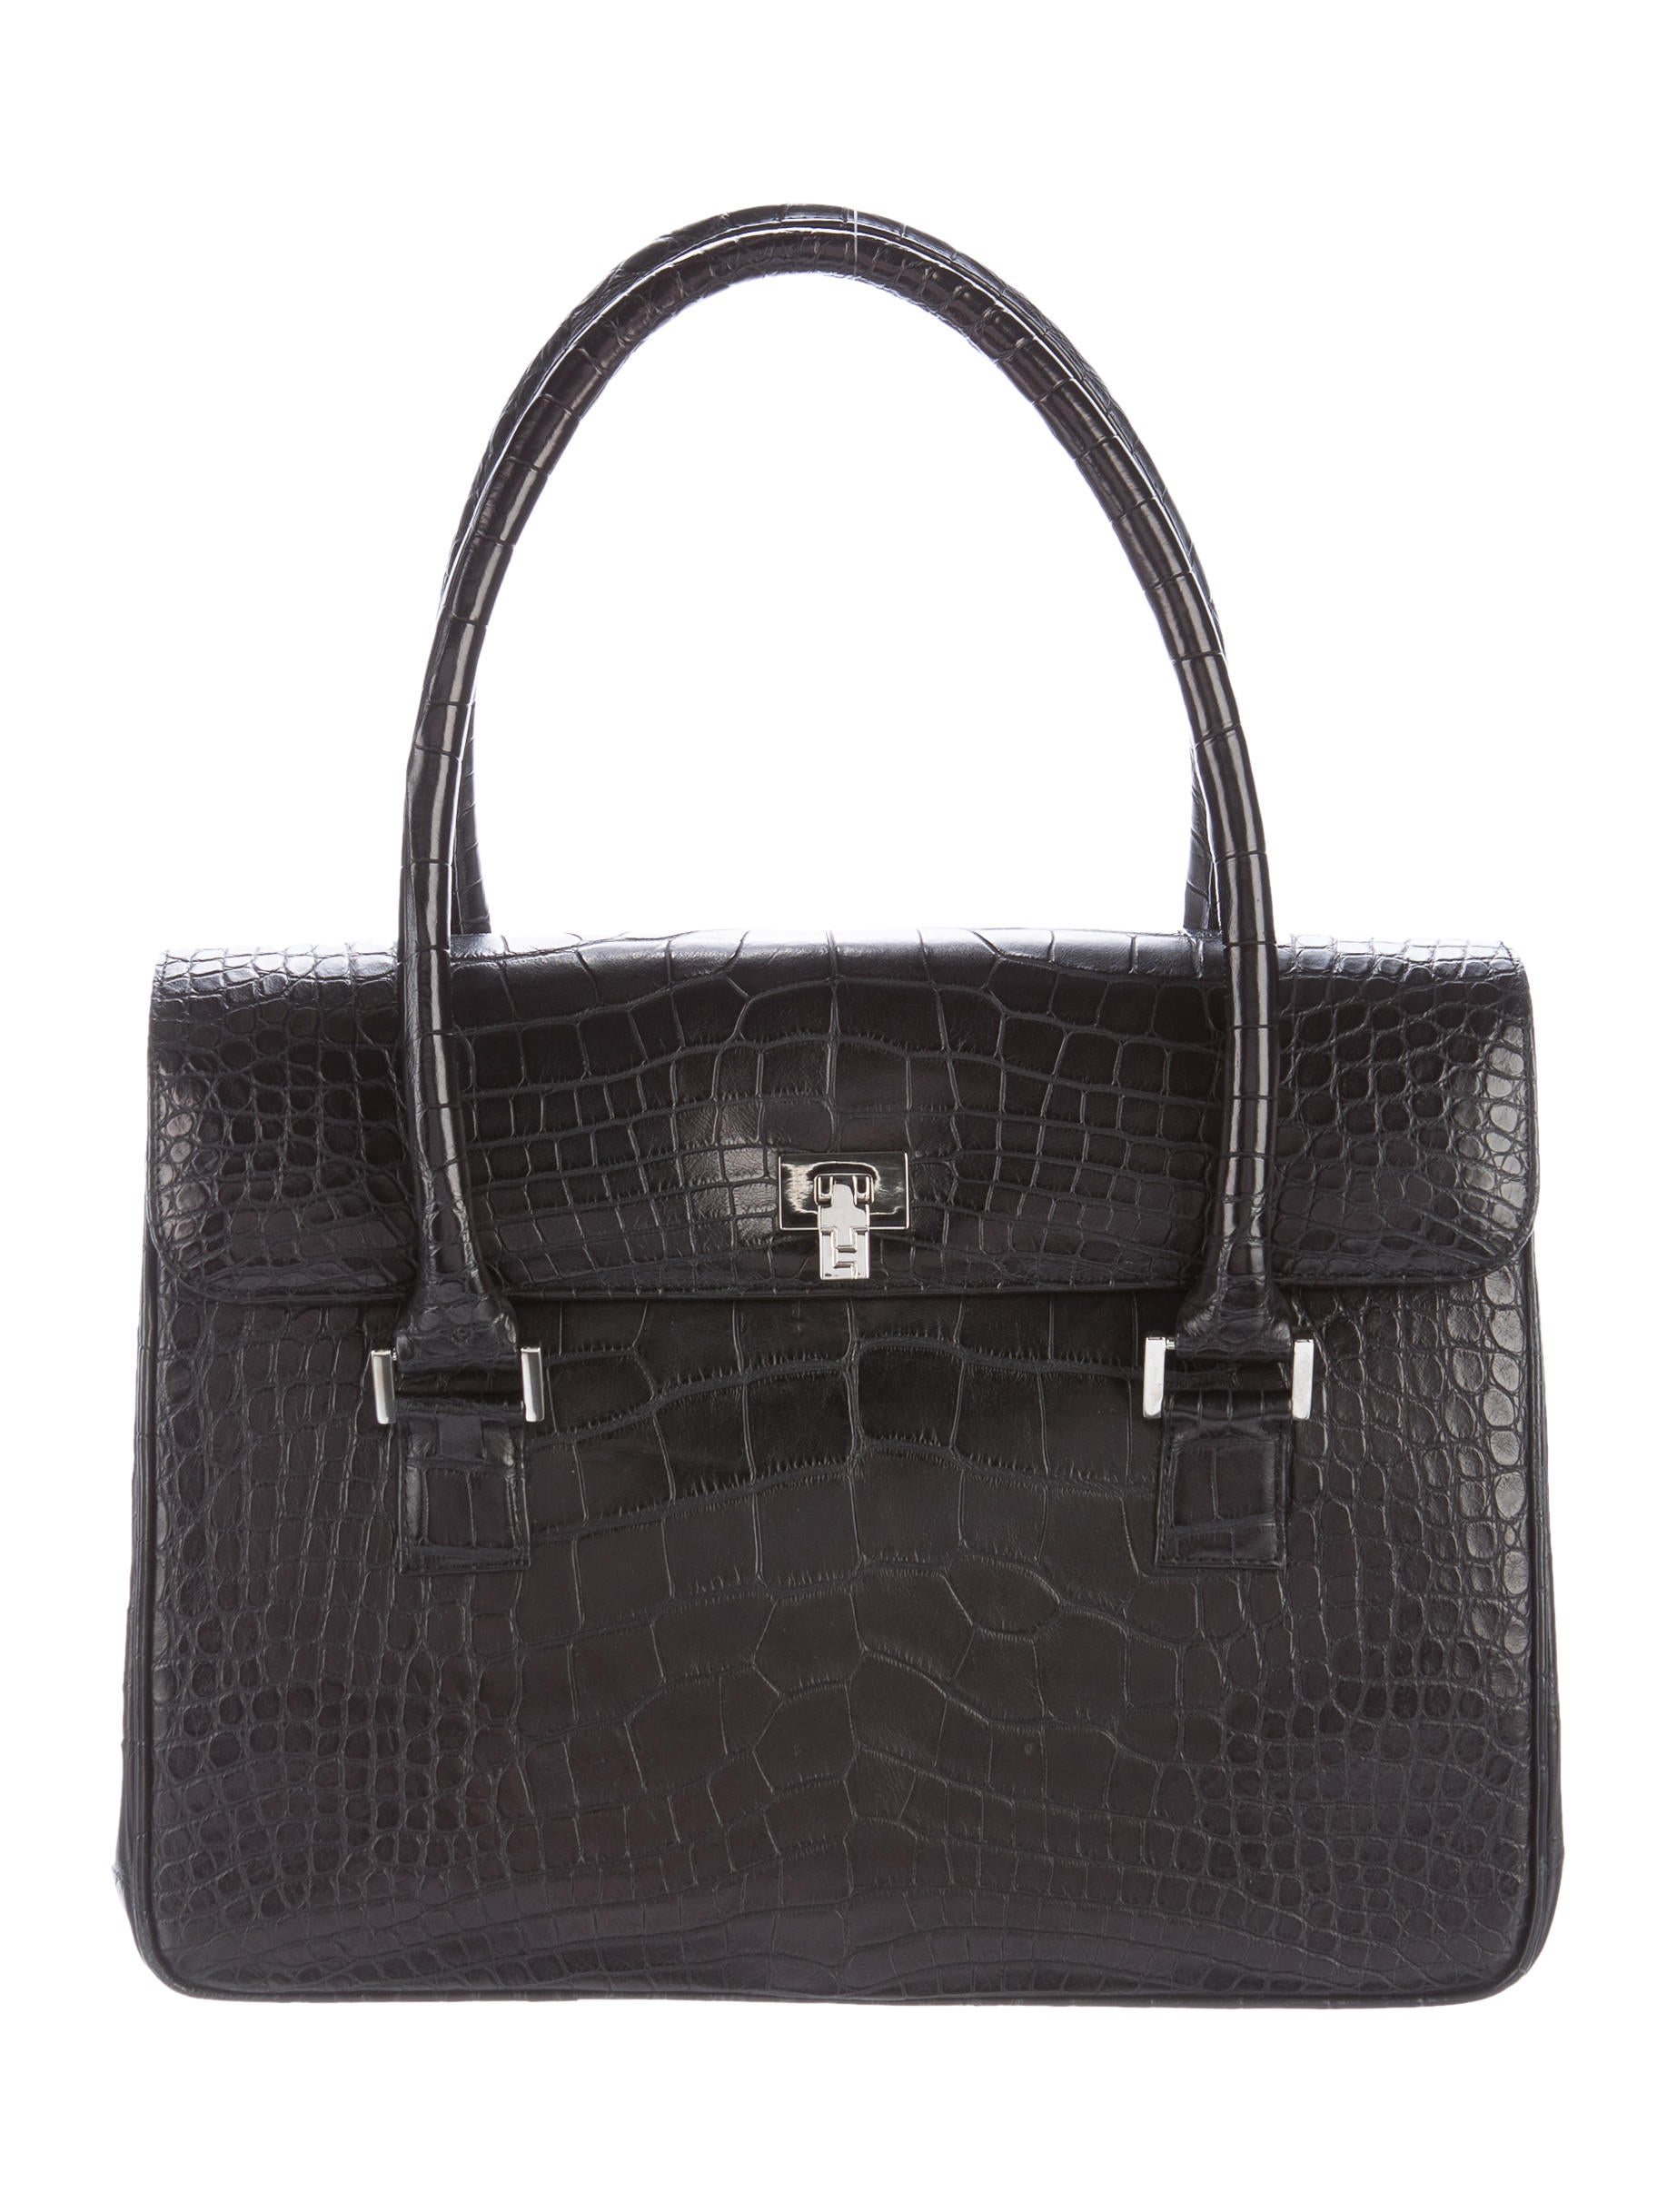 Lambertson Truex Alligator Flap Tote - Handbags - WLT20281 : The RealReal